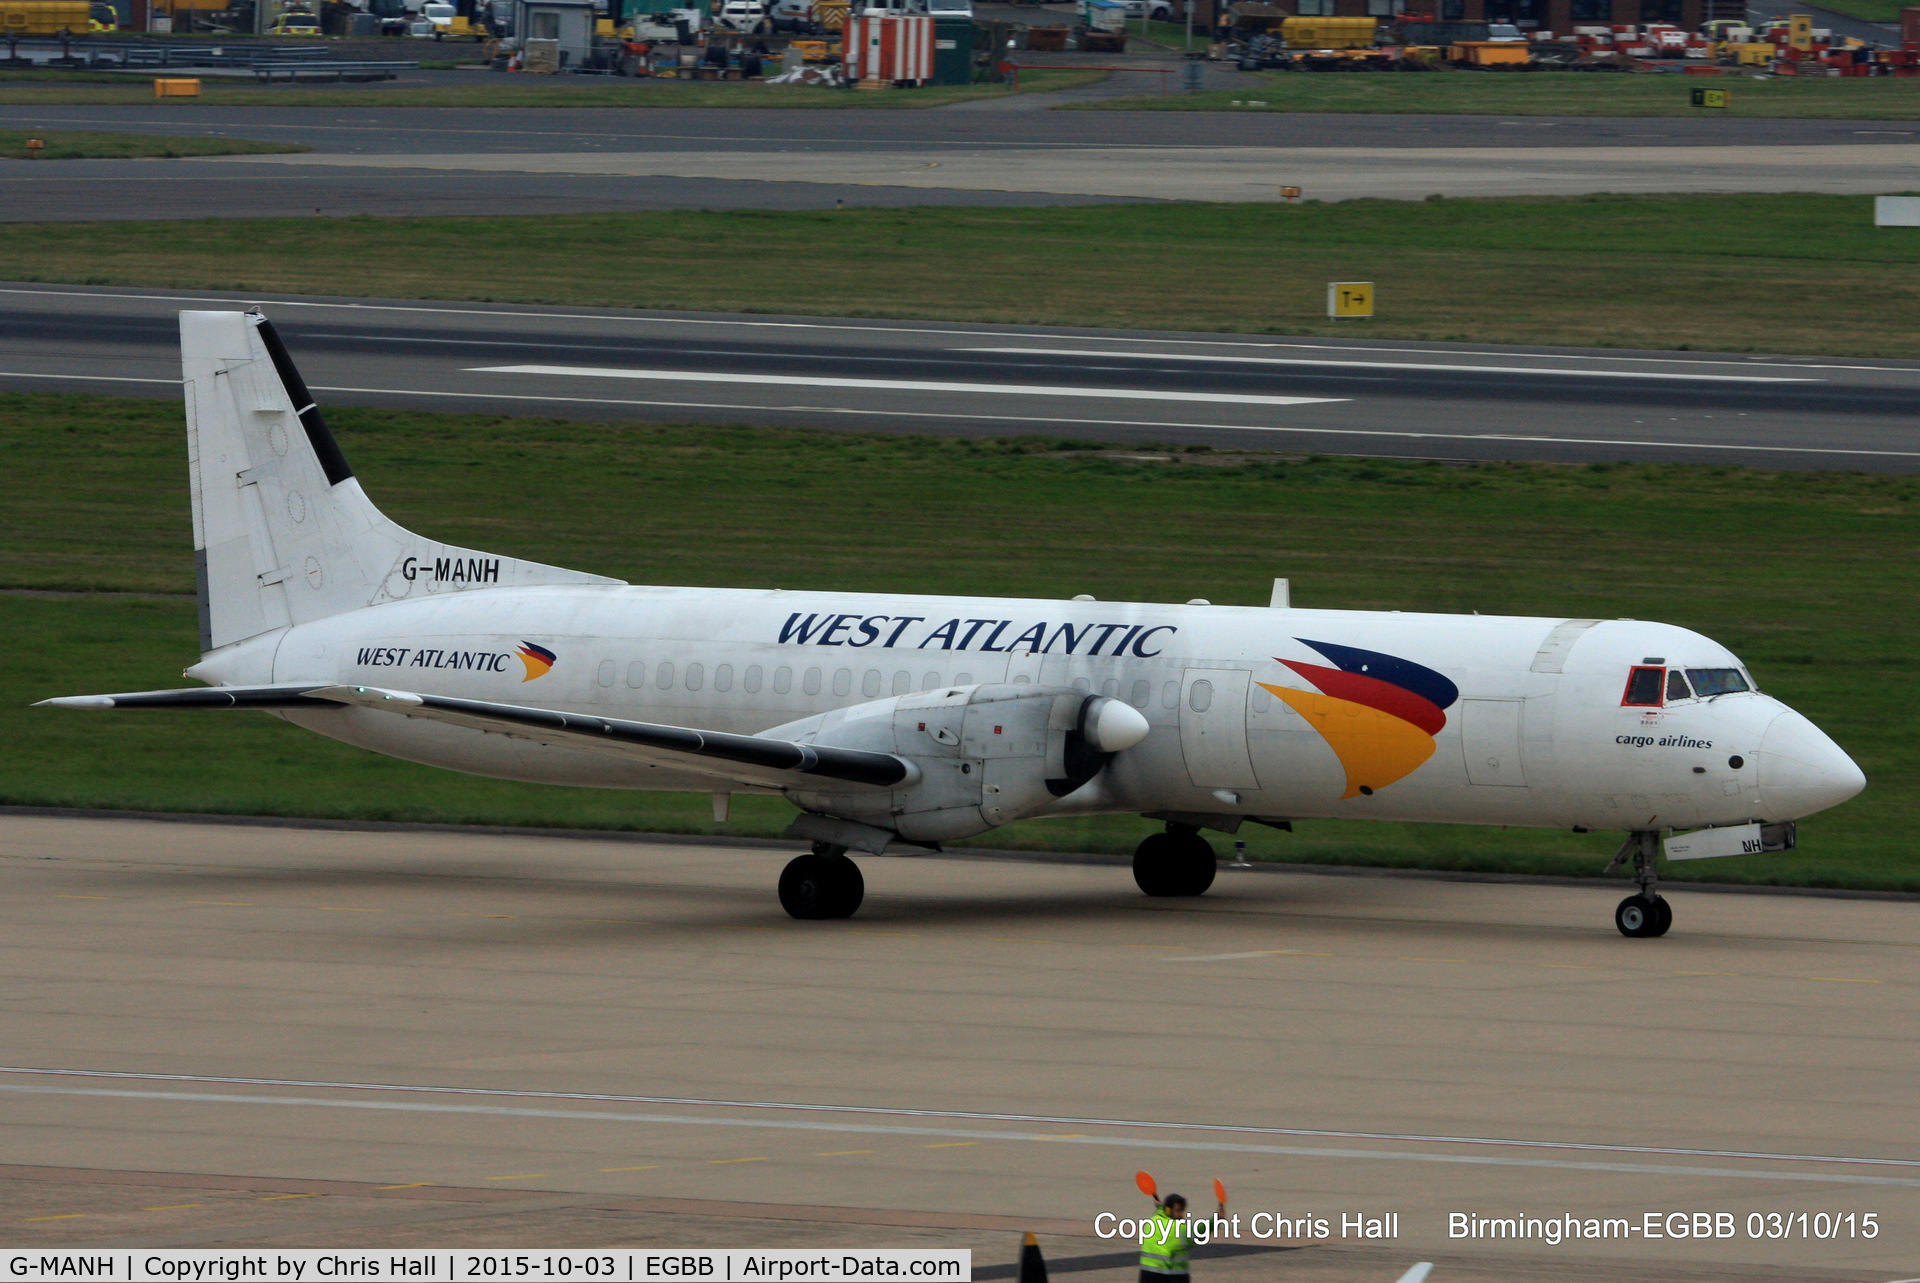 G-MANH, 1989 British Aerospace ATP C/N 2017, West Atlantic Airlines